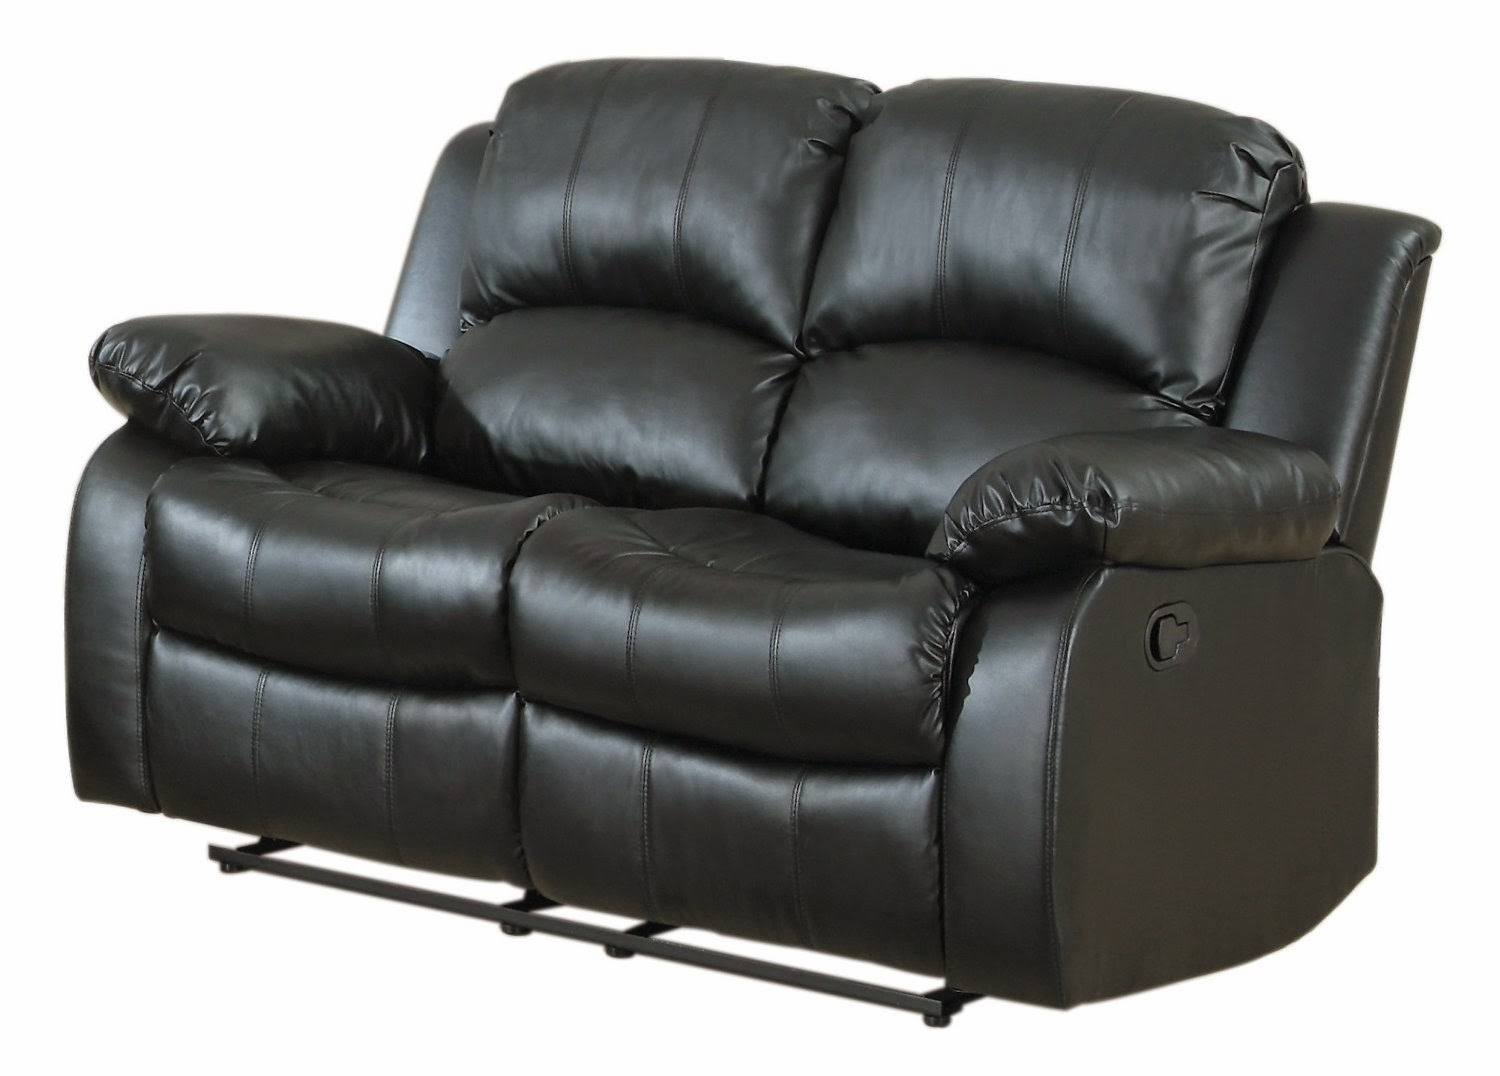 Homelegance 9700BLK 2 Berkline Leather Reclining Sofa Costco